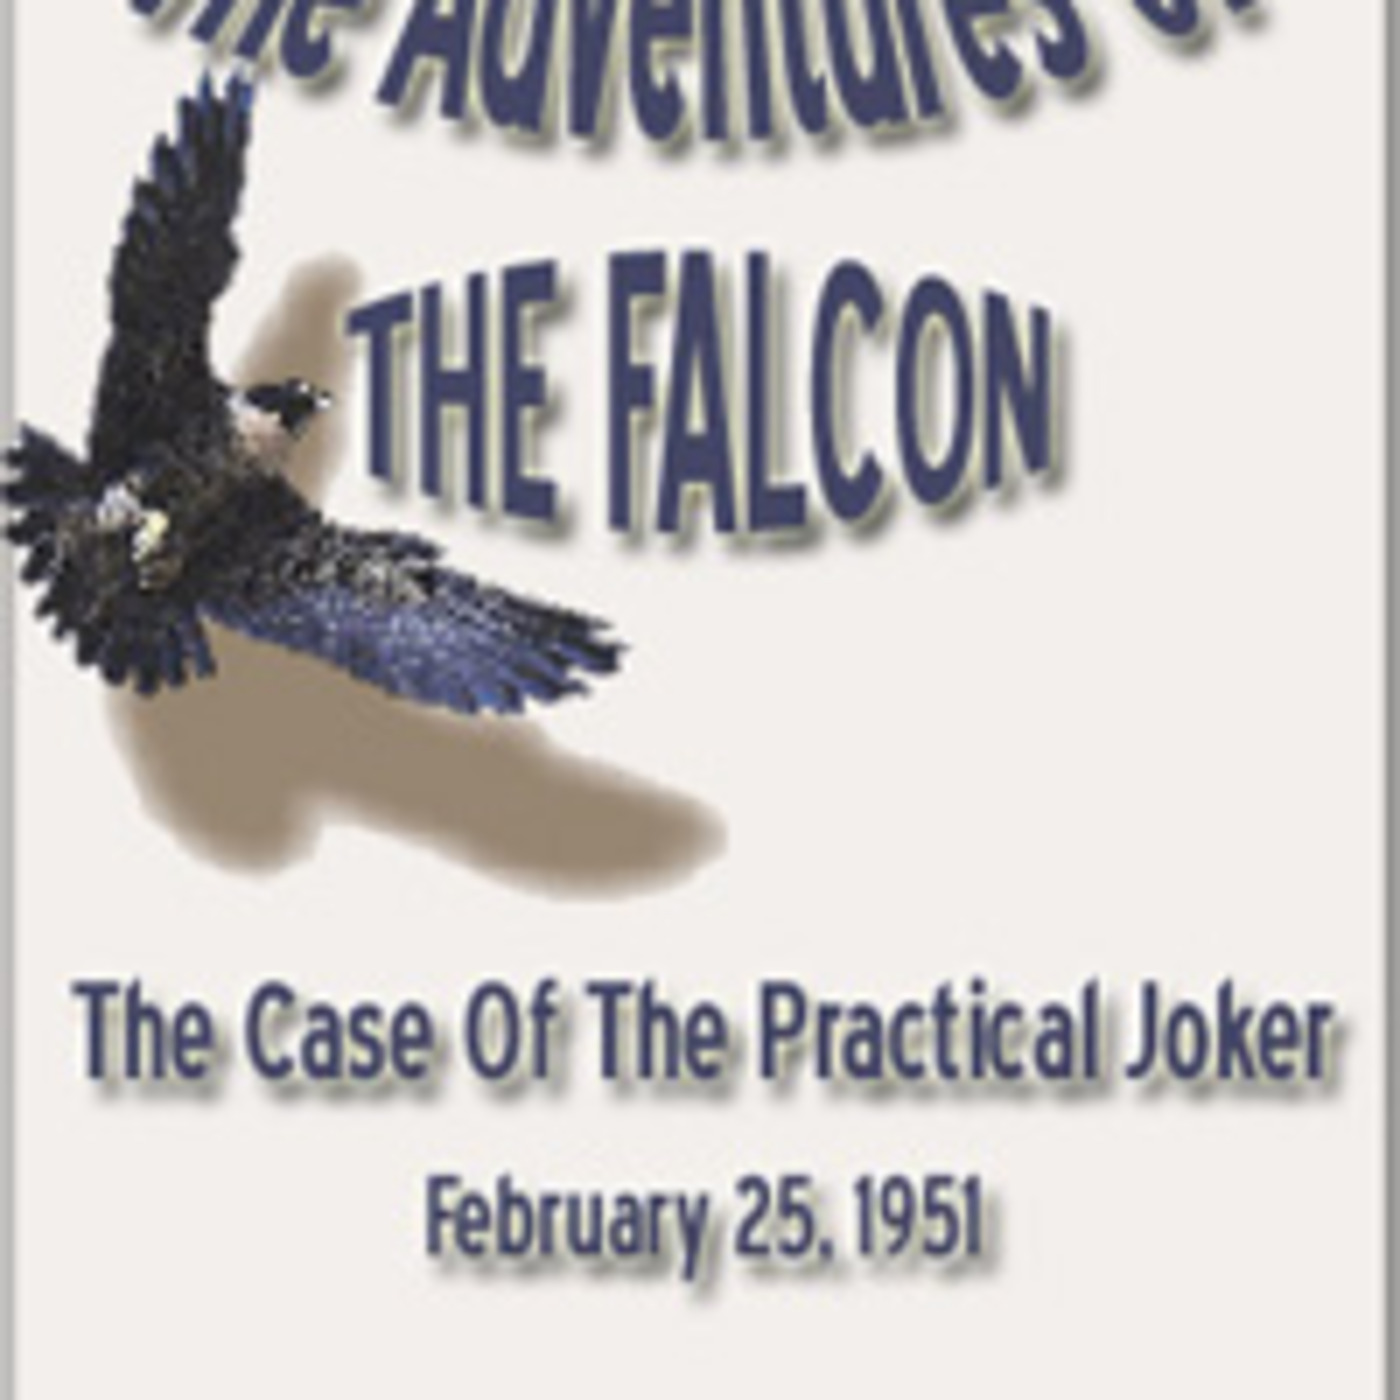 The Falcon - The Case Of The Practical Joker (02-25-51)